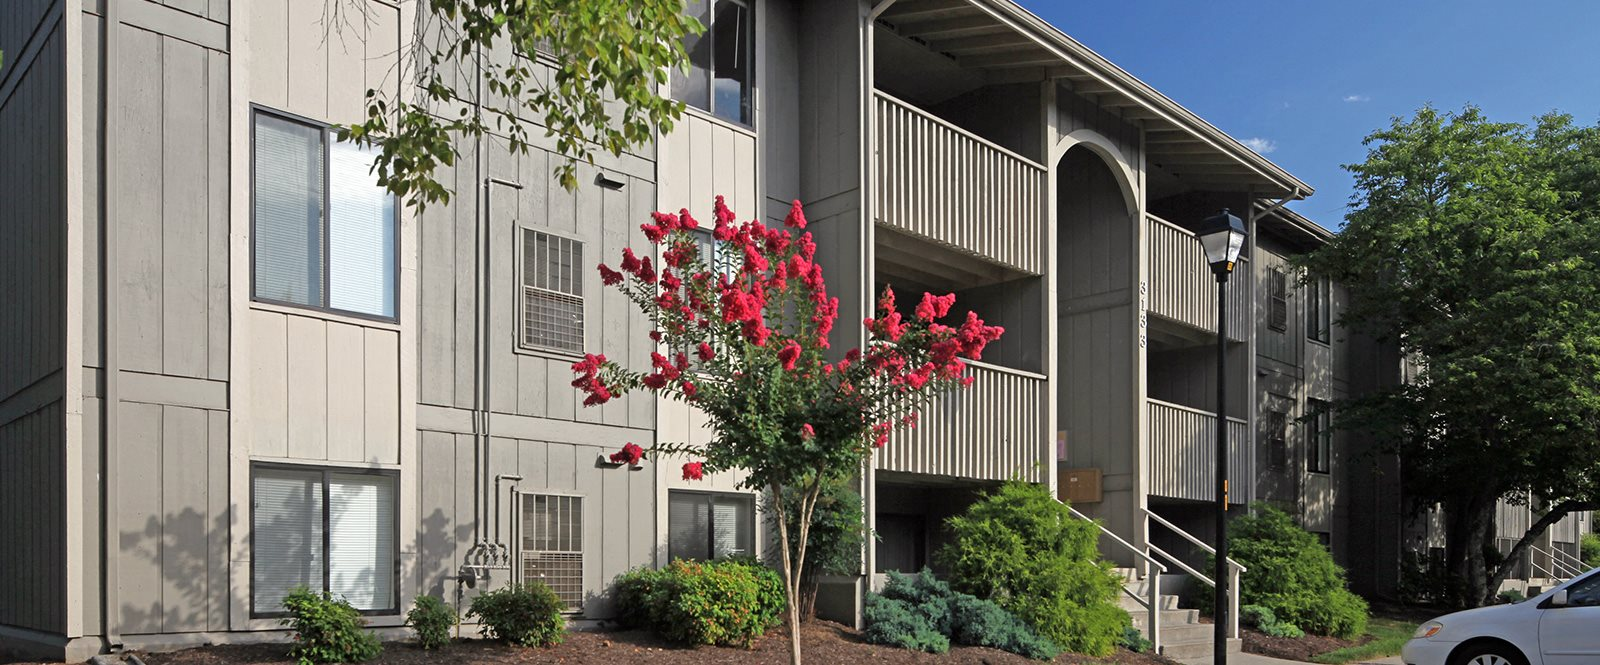 Elegant Exterior View Of Property at Honeywood Apartment Homes by HHHunt, Roanoke